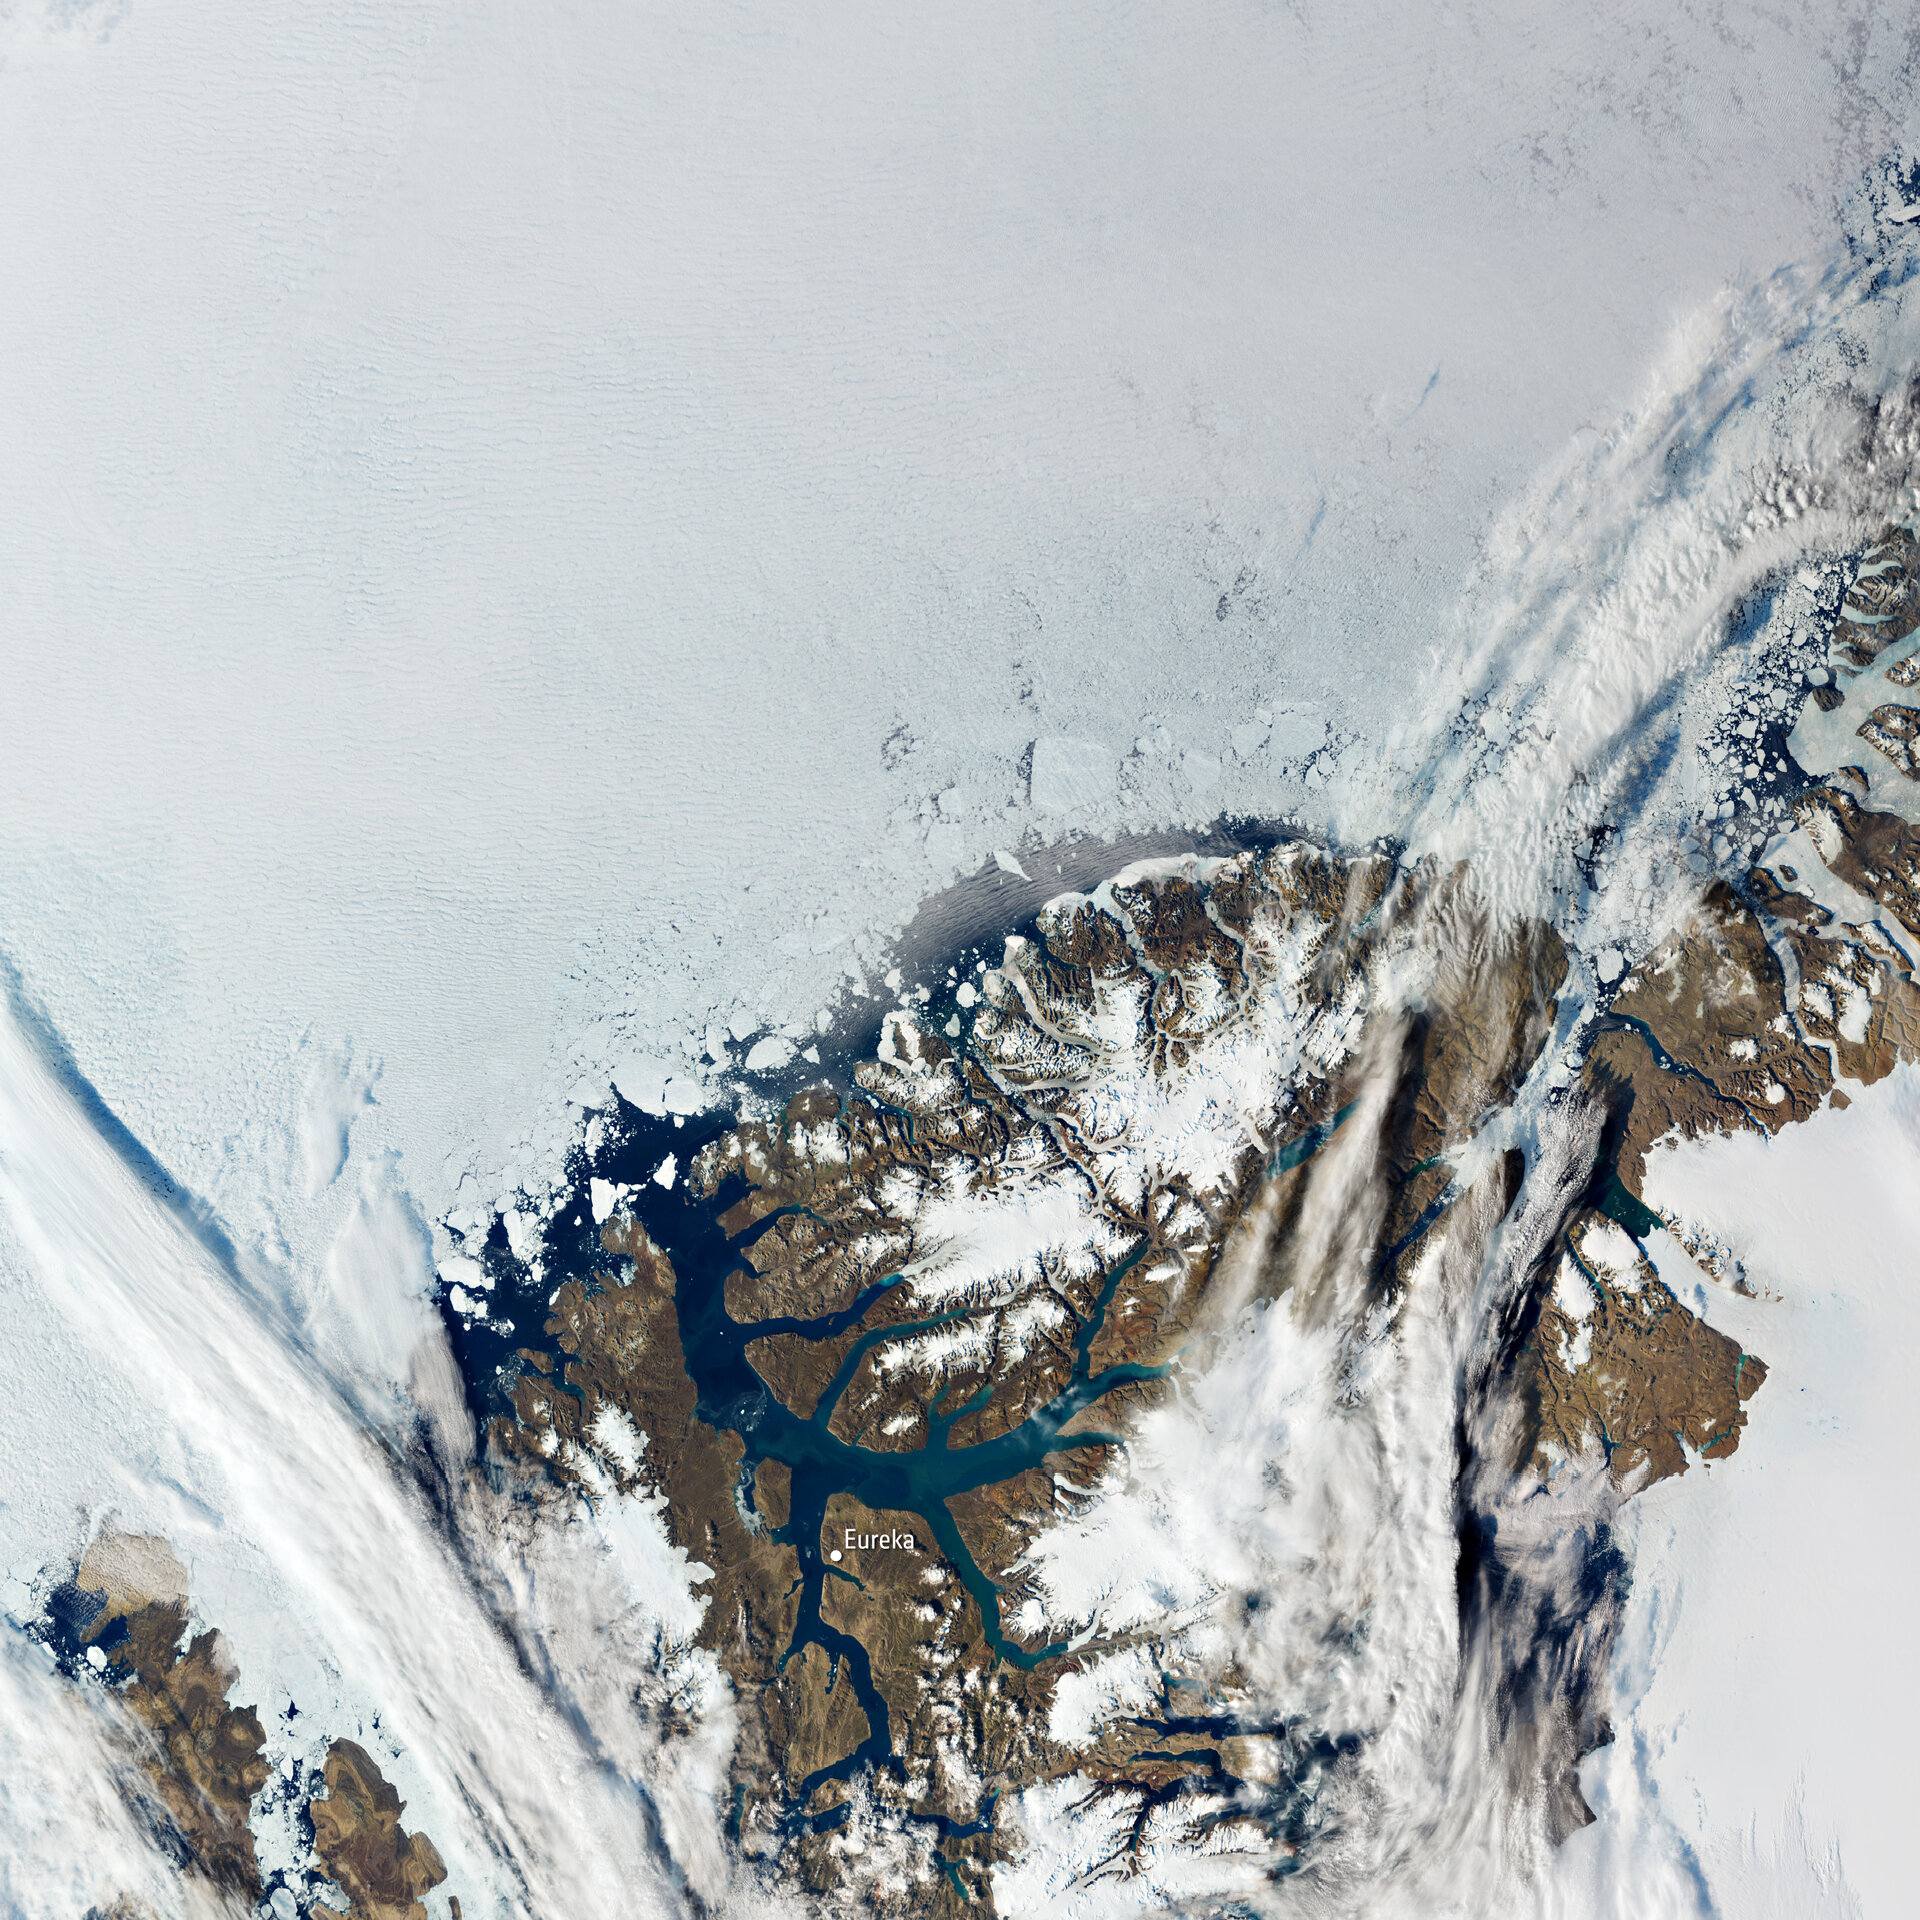 Captured on 11 August by the Copernicus Sentinel-3 mission, this image shows Eureka in the Canadian territory of Nunavut.